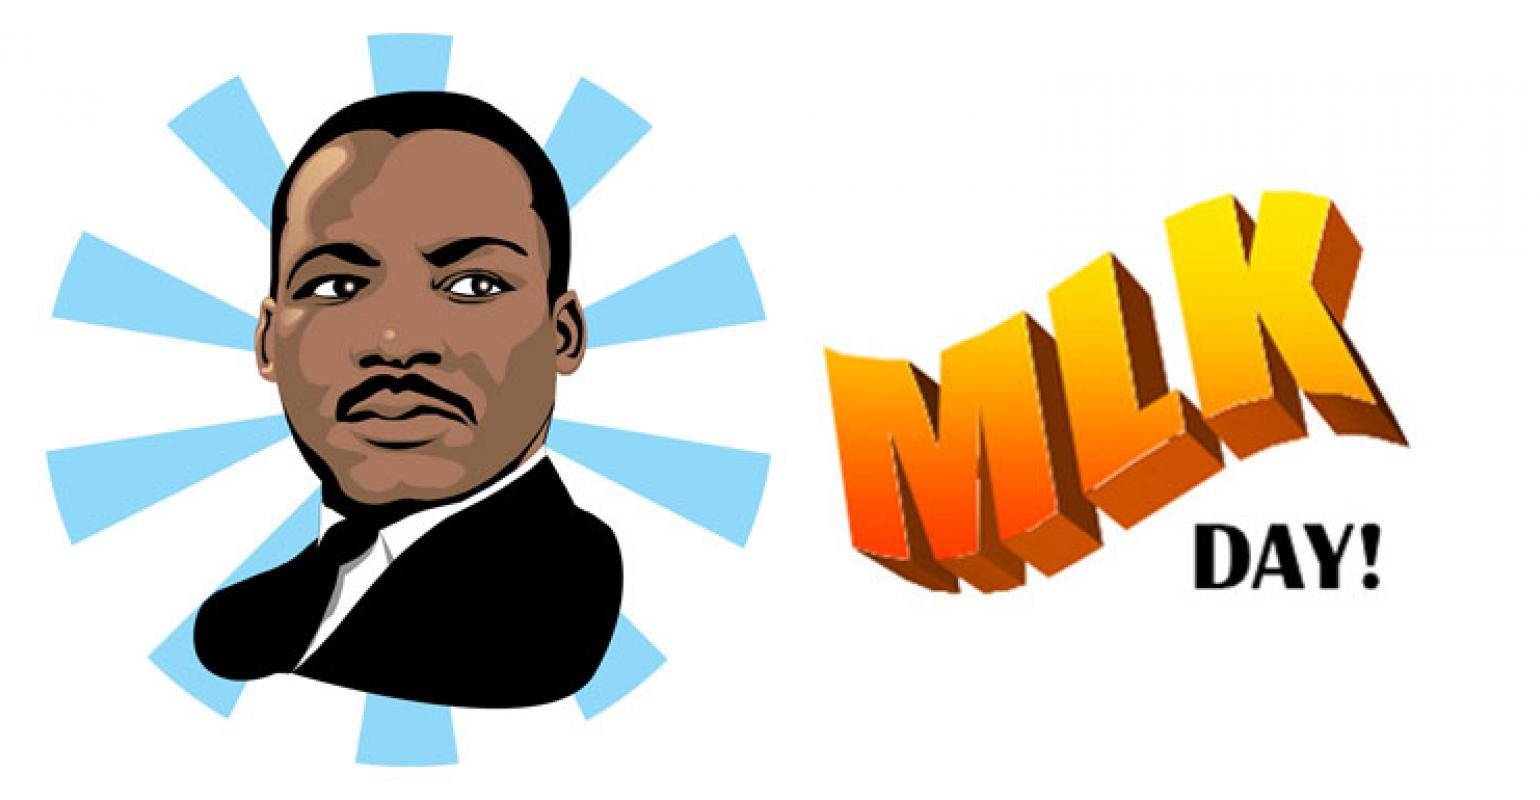 2018 clipart mlk day. Martin luther king baseball